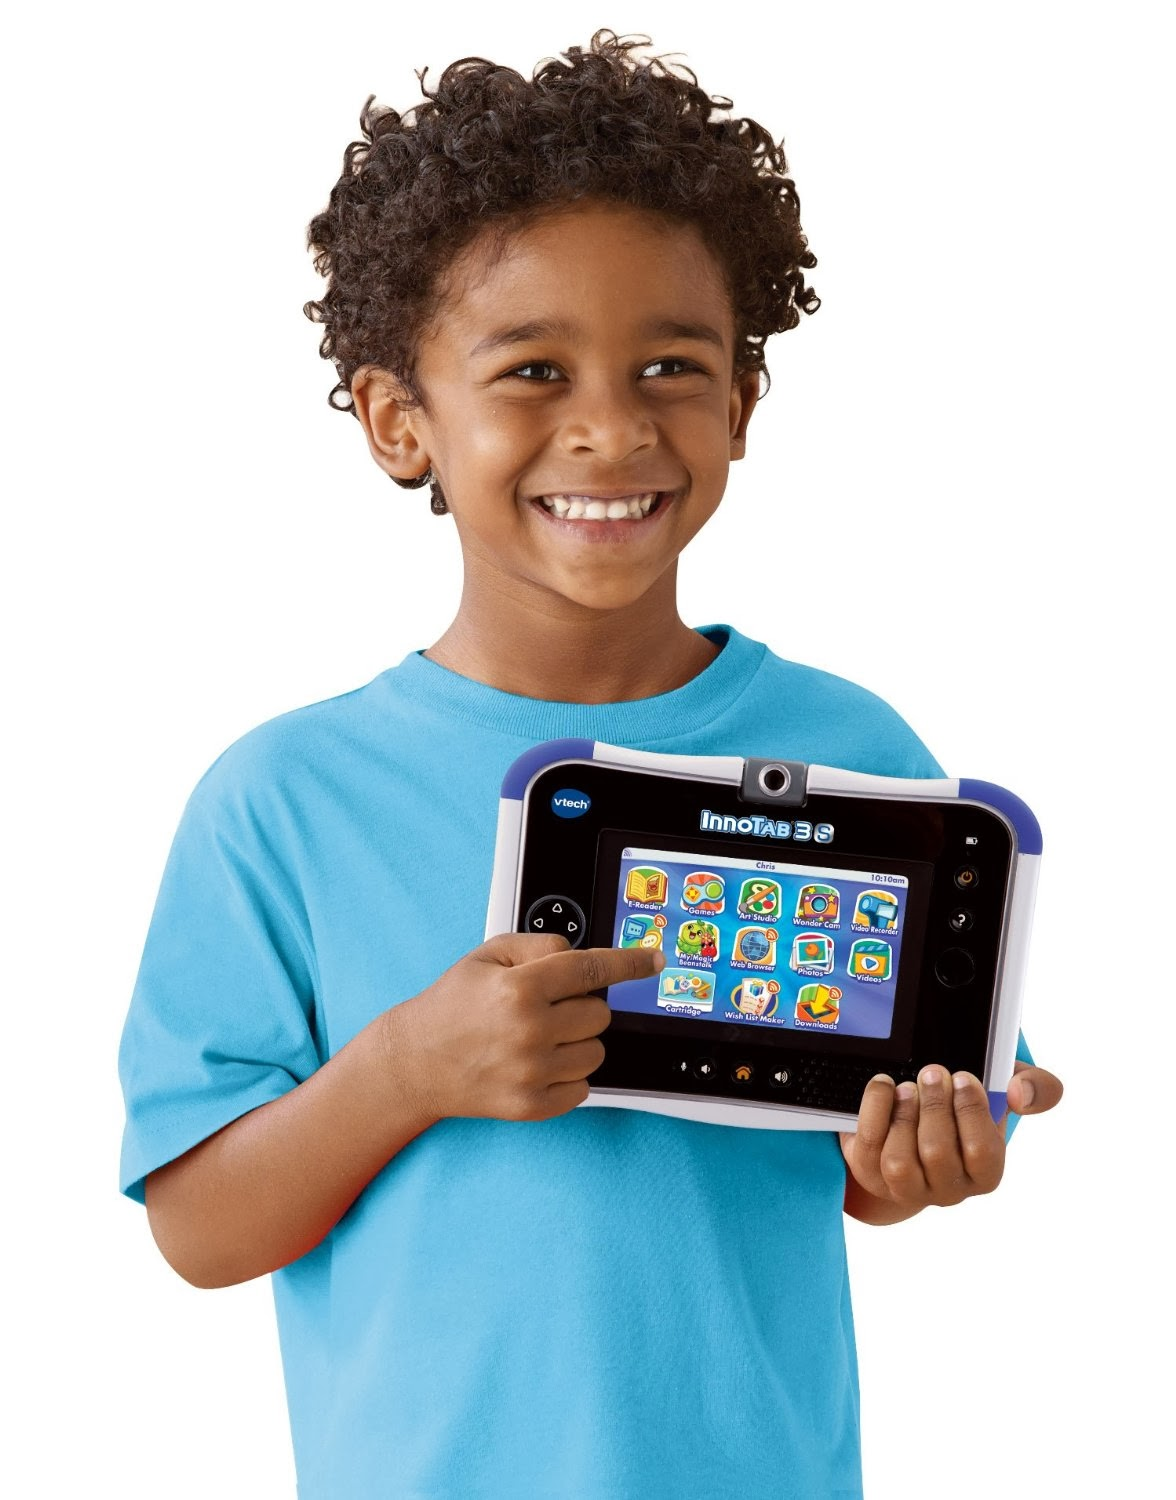 kids with vtech